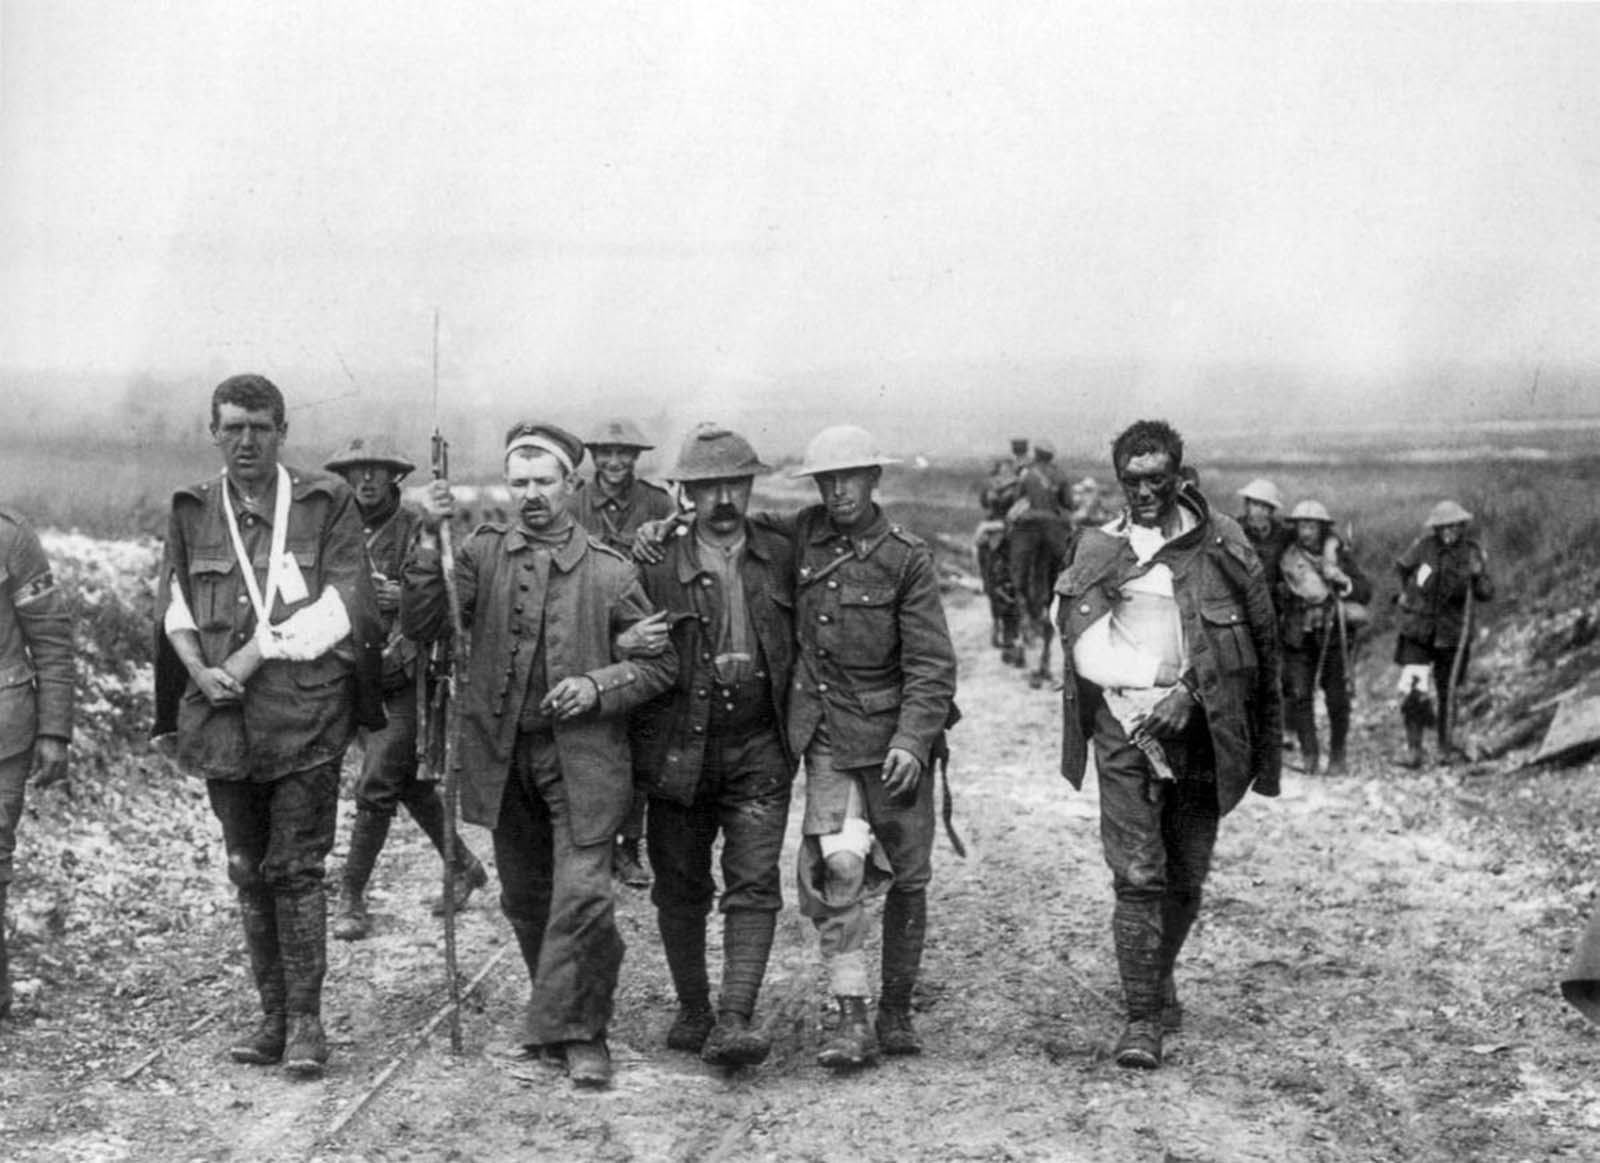 Wounded British soldiers return from the front lines.